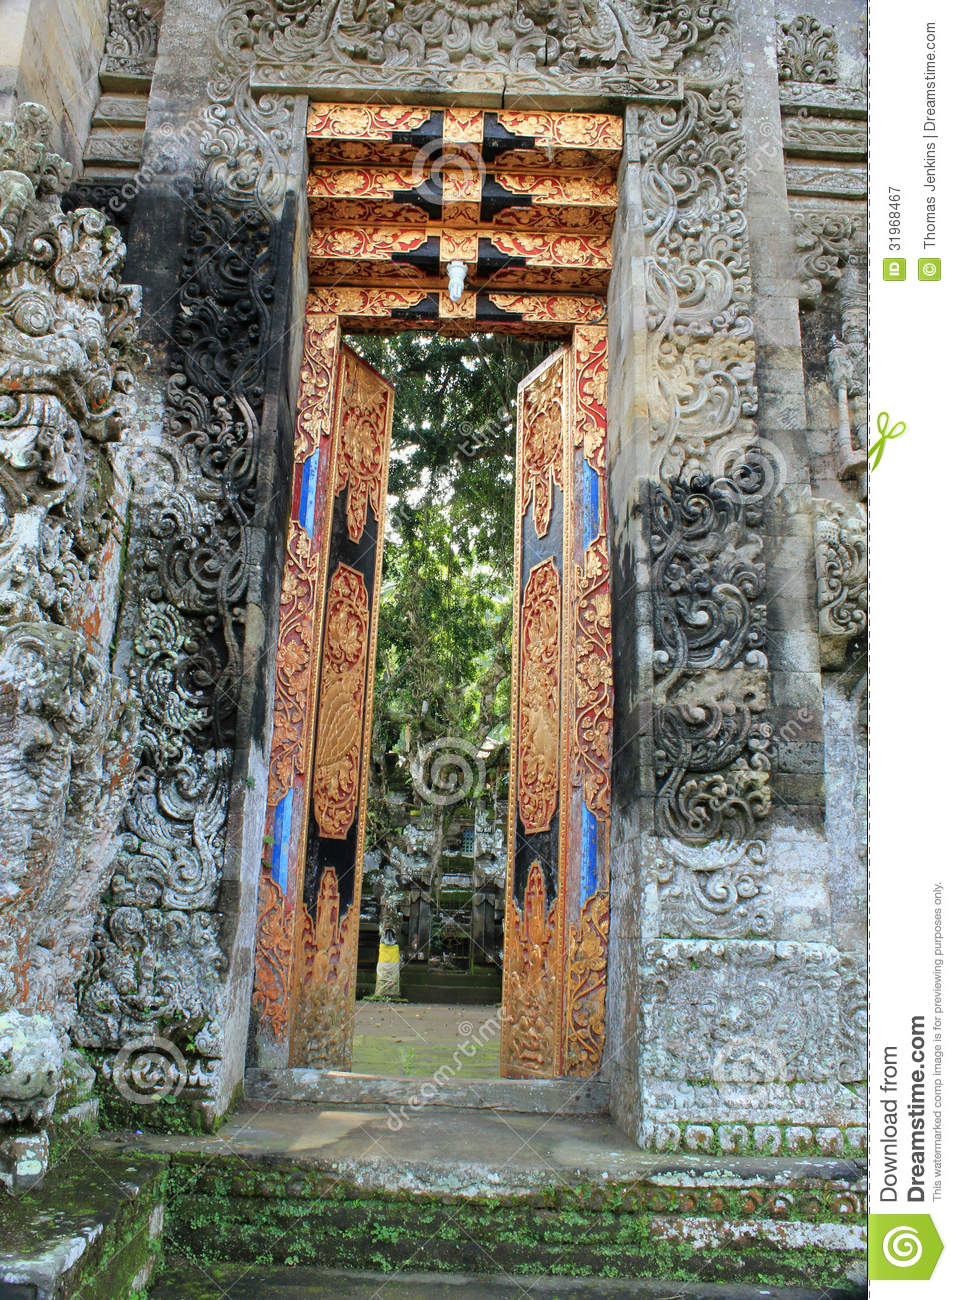 Royalty-Free Stock Photo & Decorative Open Doors Of Pura Kehen Temple In Bali Royalty Free ... Pezcame.Com